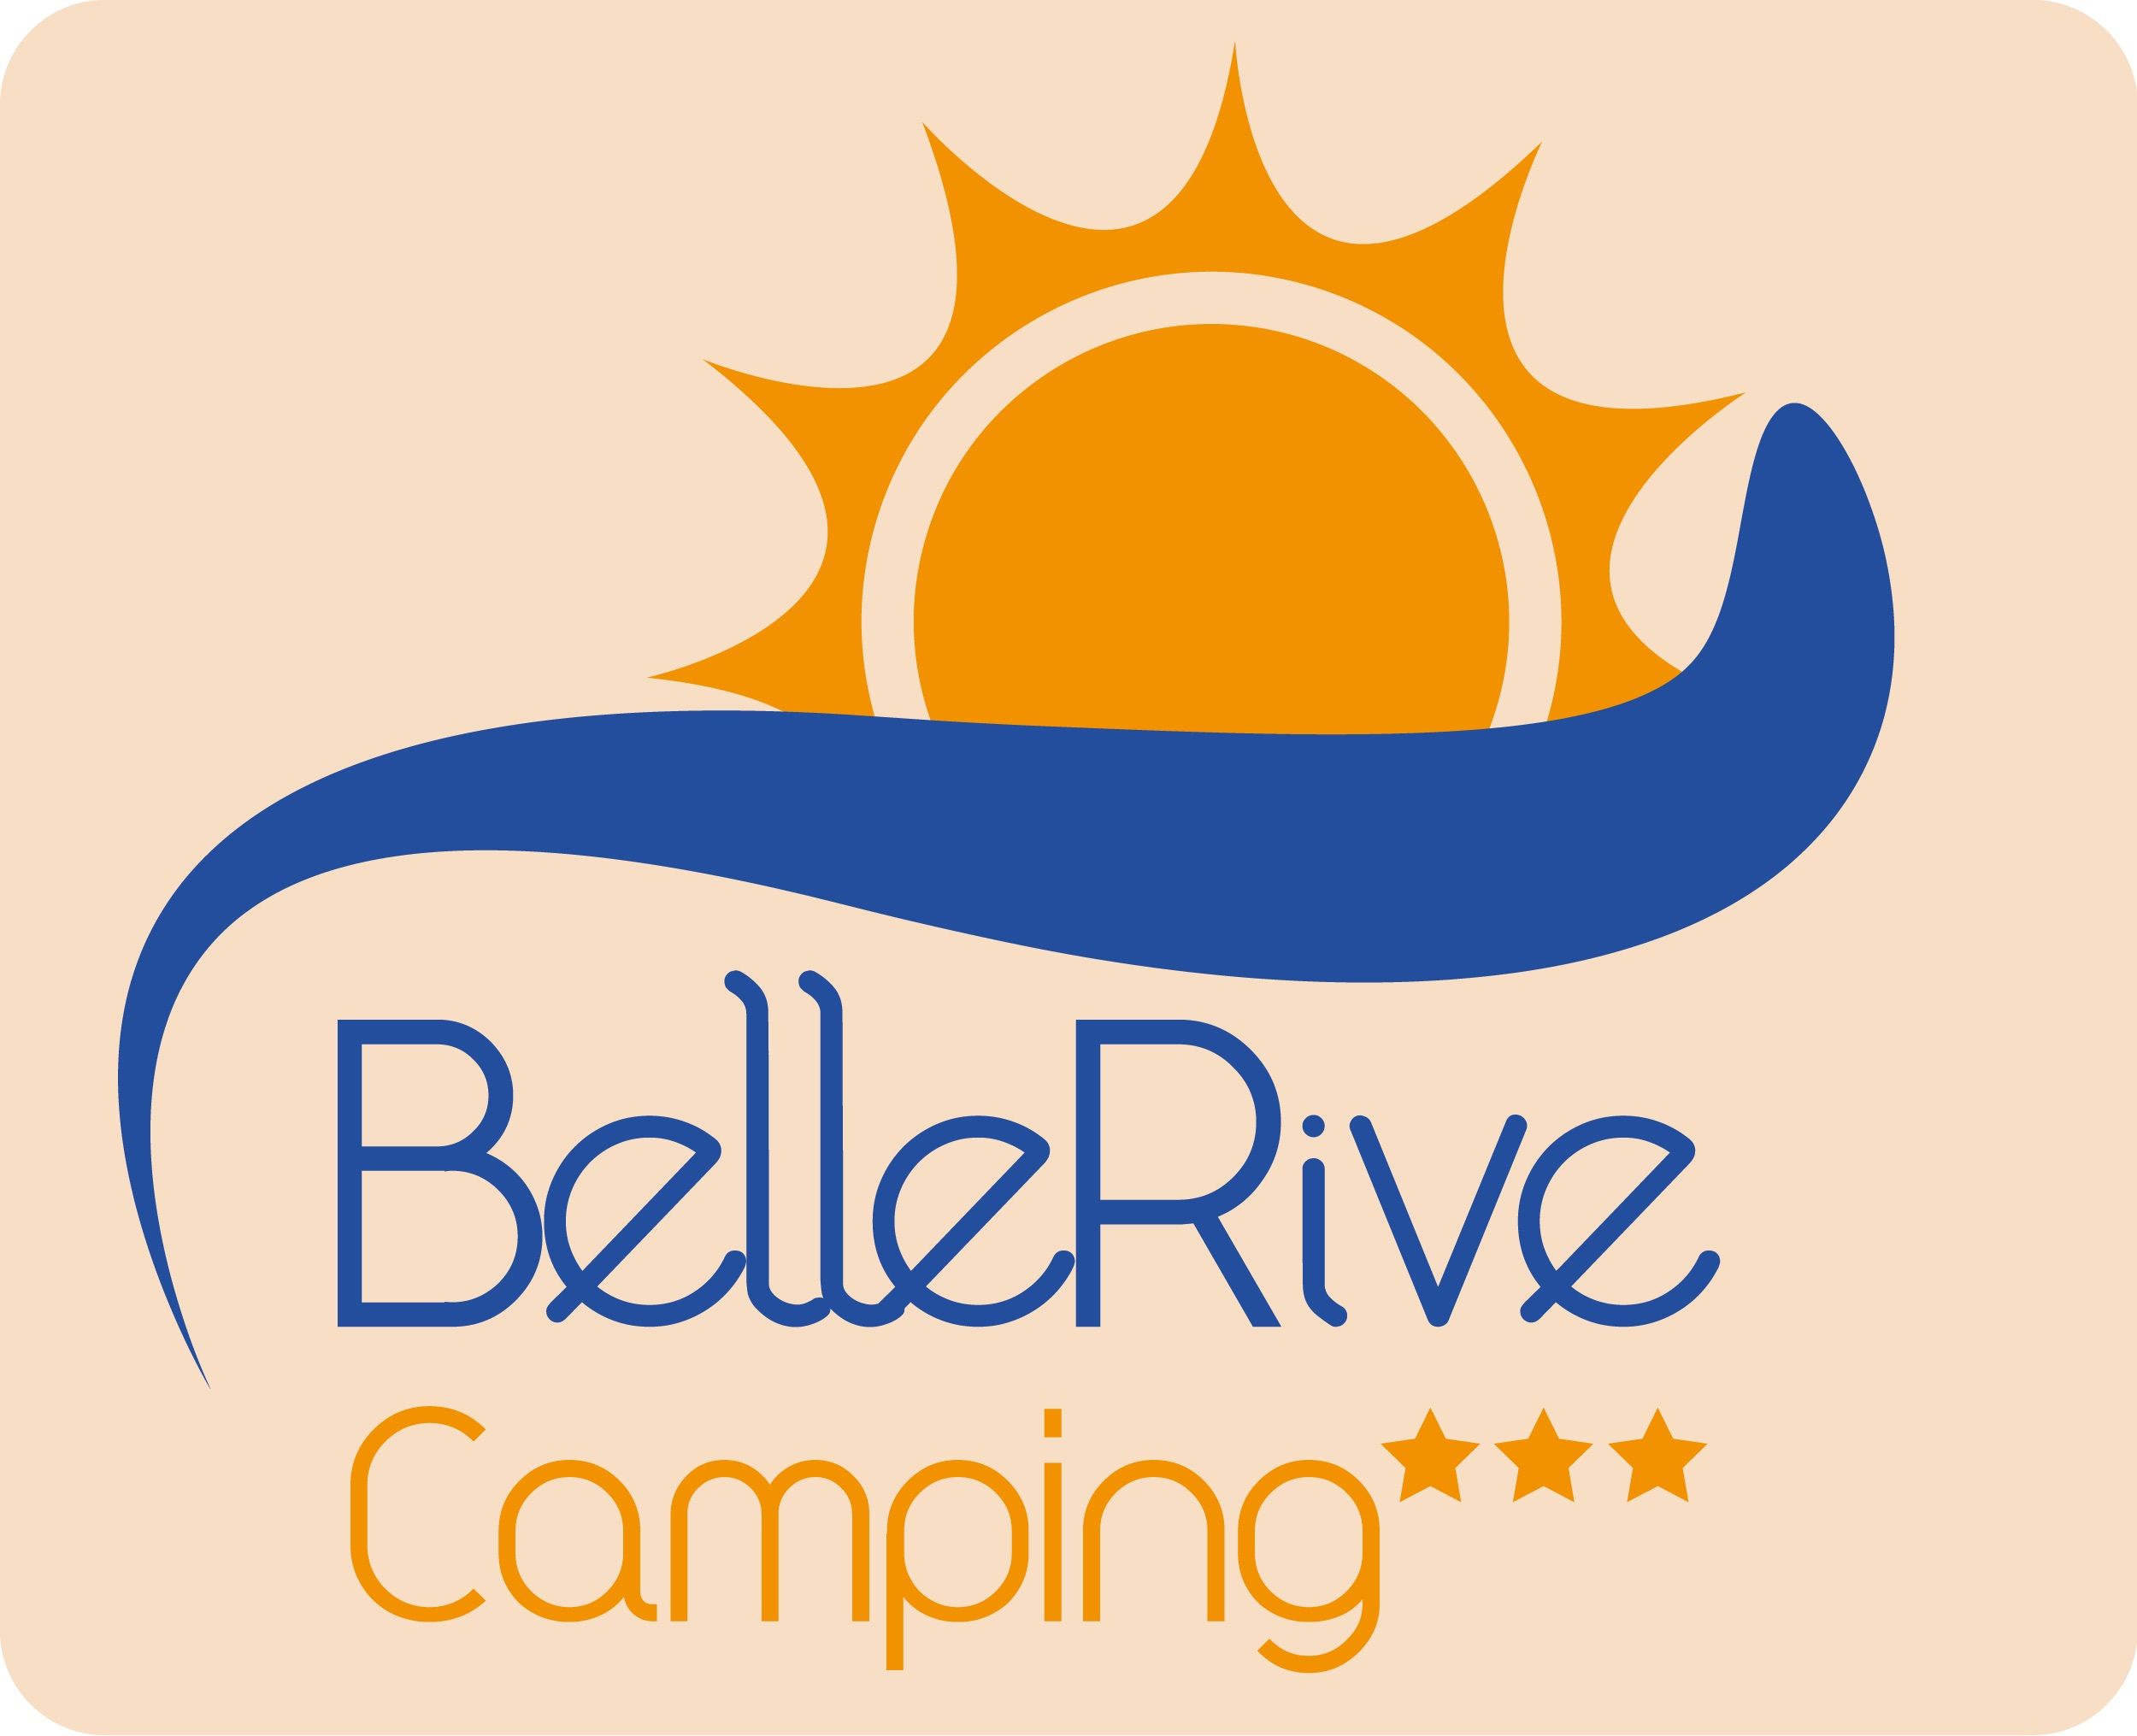 Camping*** Belle Rive